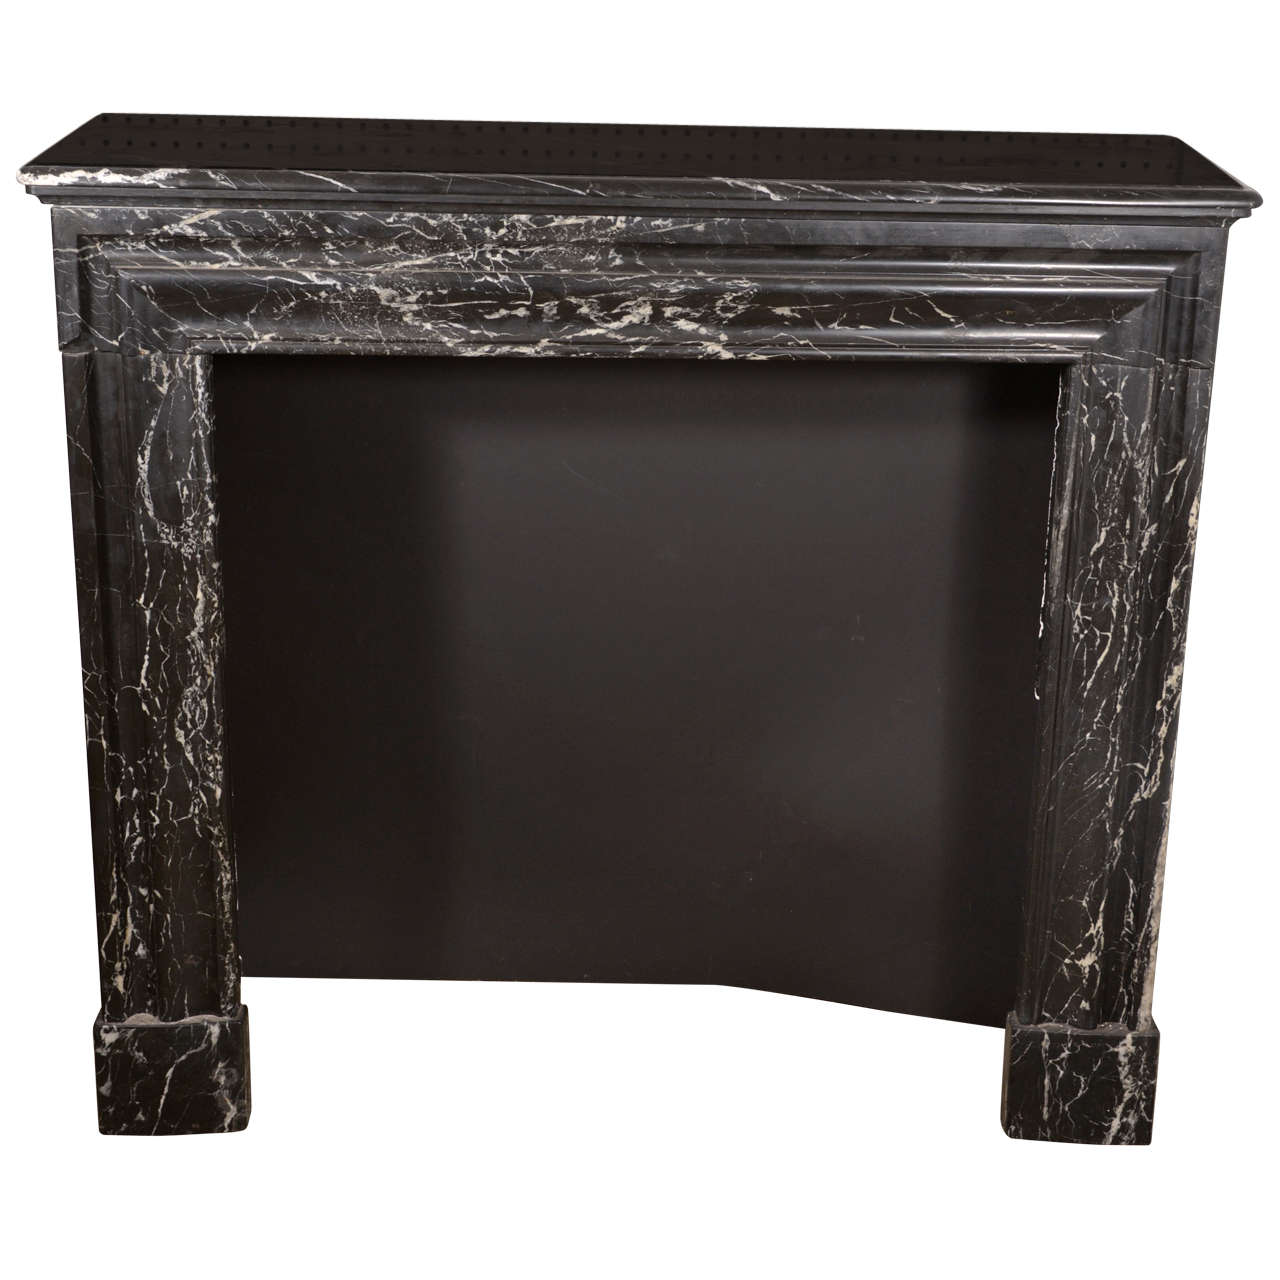 Black Veined Fireplace Marble Mantel at 1stdibs